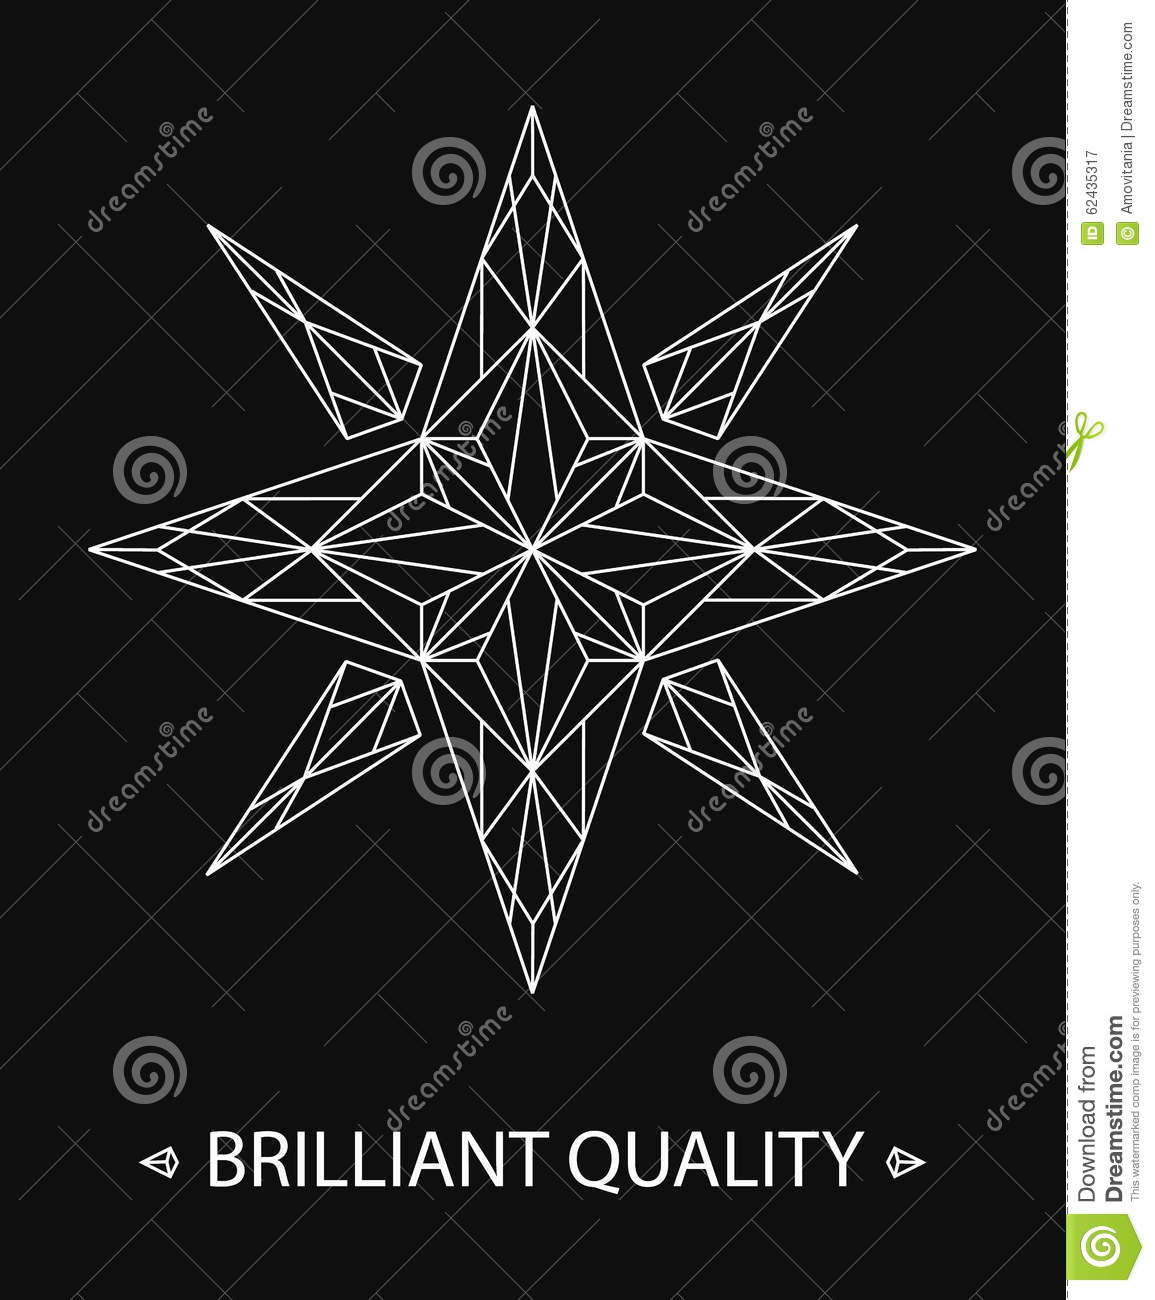 Brilliant Star Logo Stock Vector Illustration Of Abstract - Business card website template